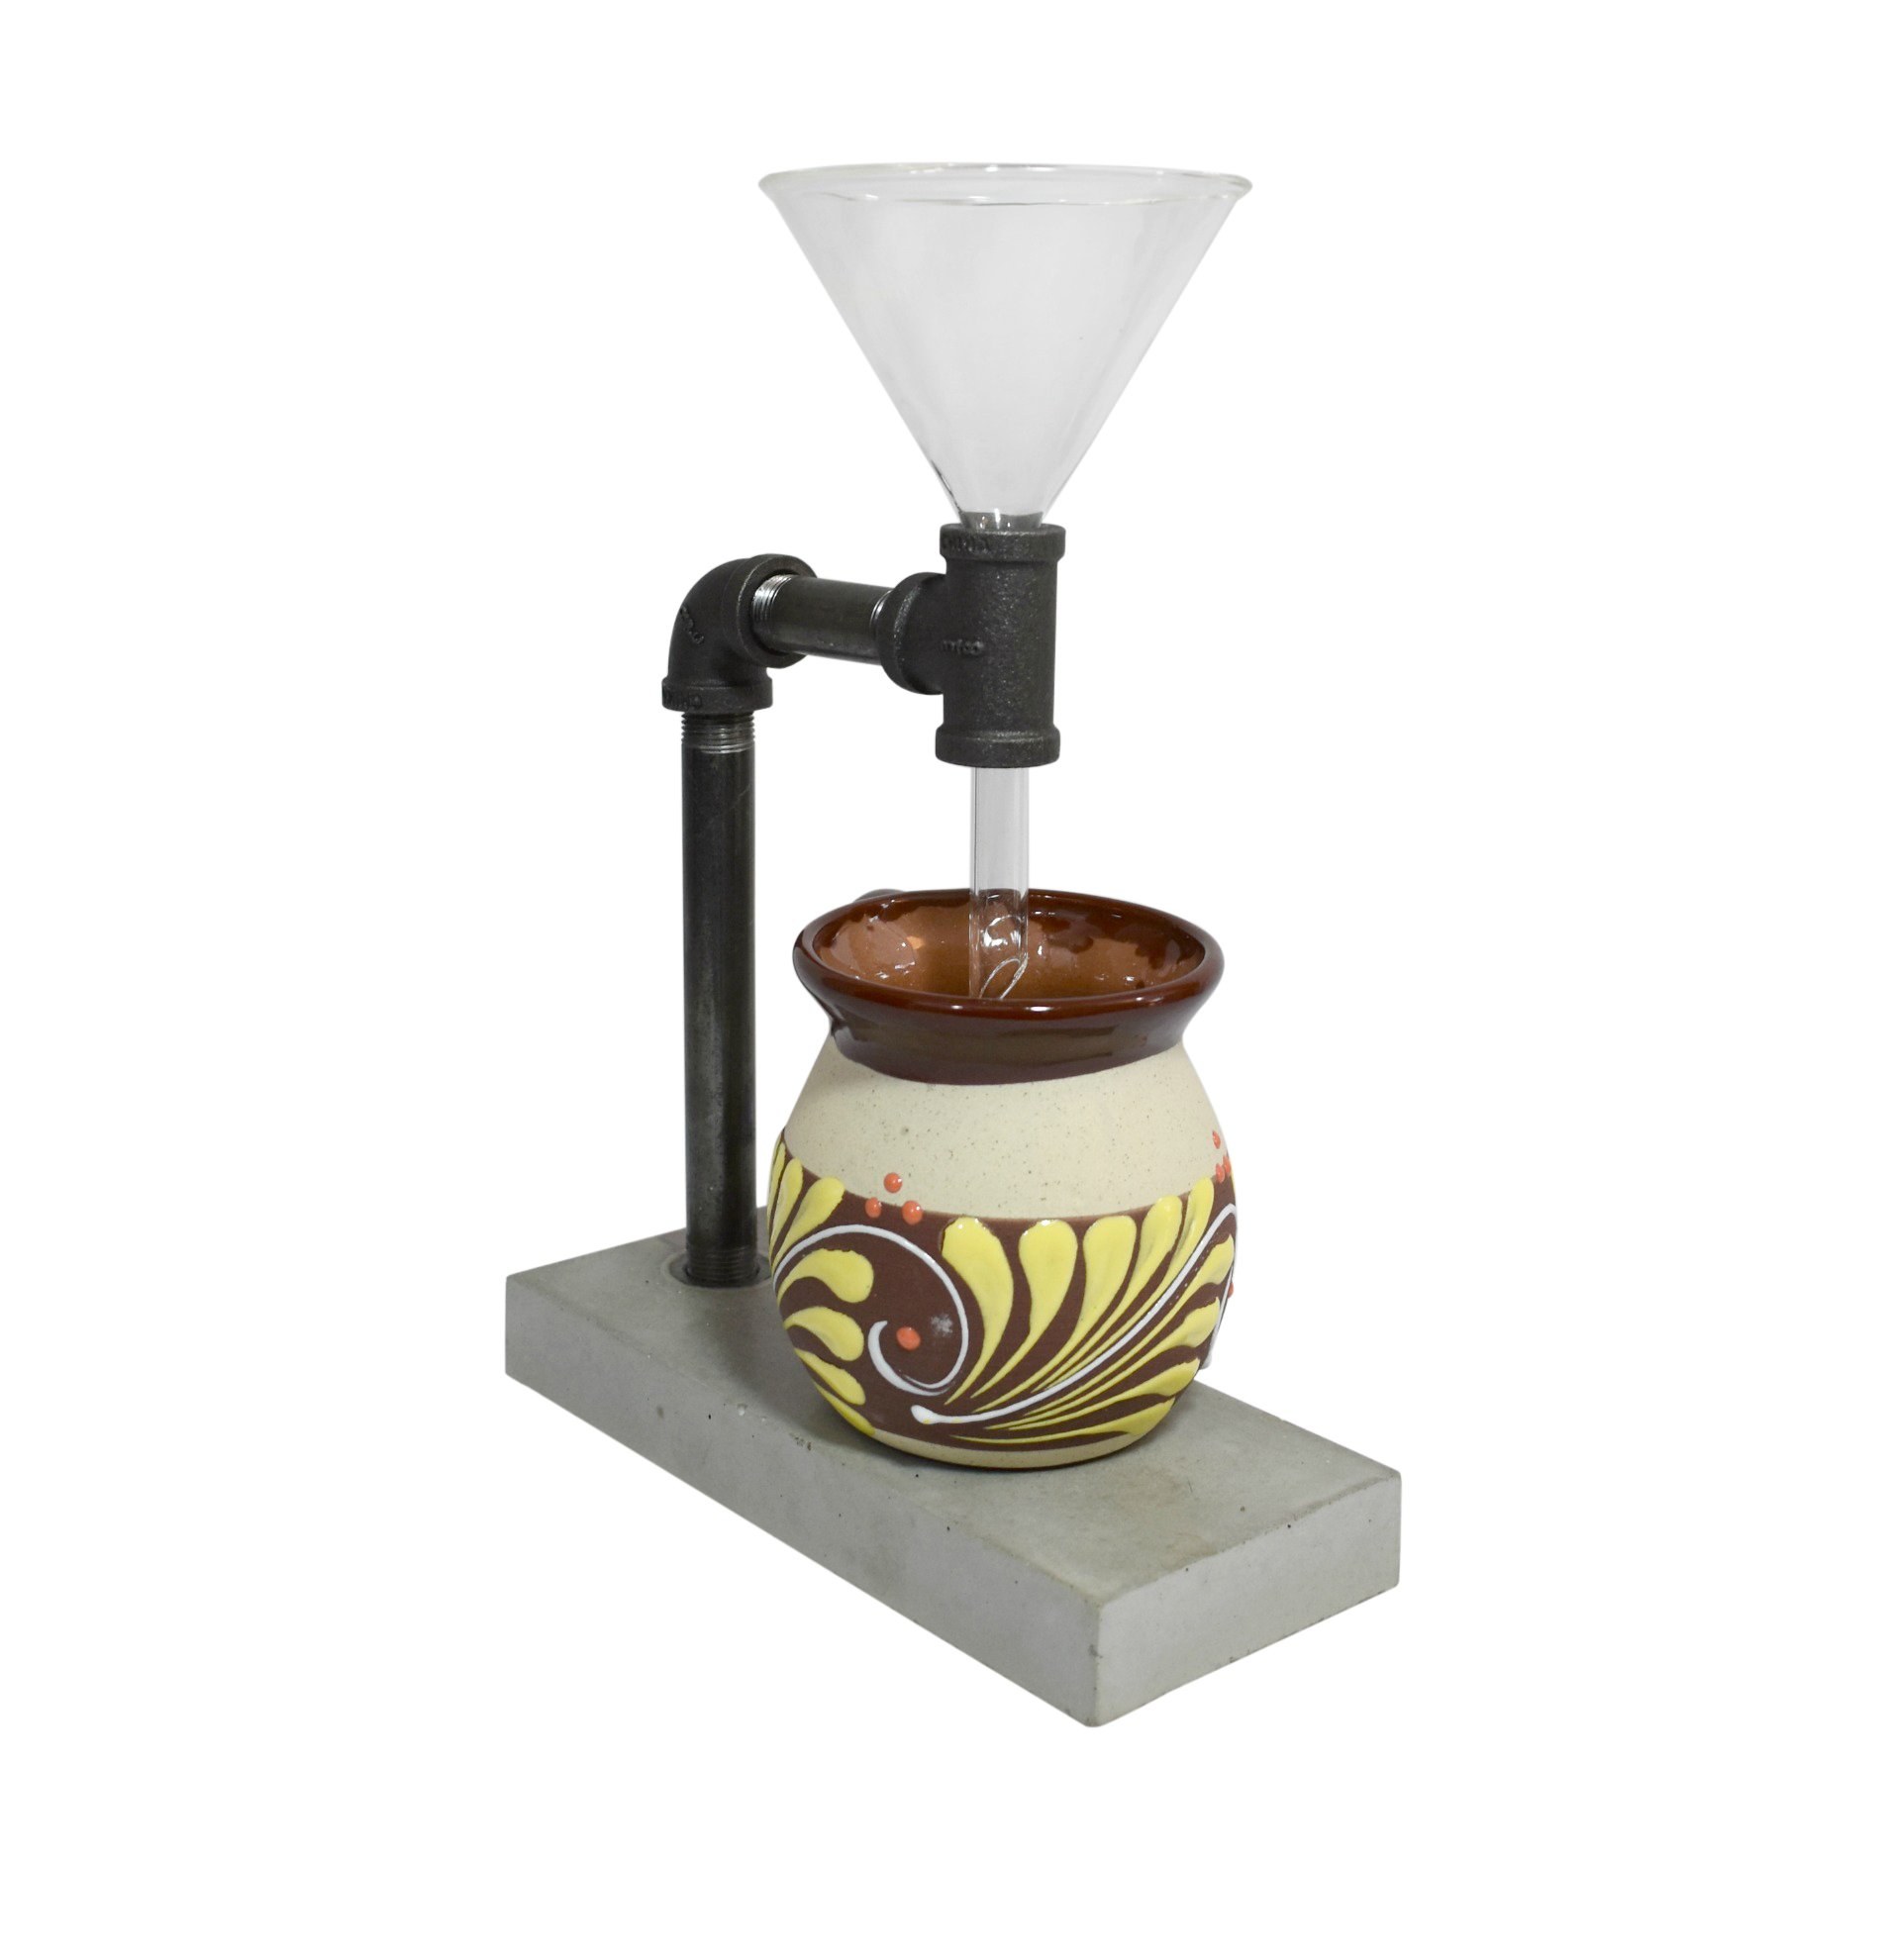 Premium Designer Black Steel Pour Over Coffee Maker Handmade Concrete Stand Complete With Glass Dripper - The Finest Homemade Pour-Over Coffee a Unique Individual Coffee Filter Coffee Drip